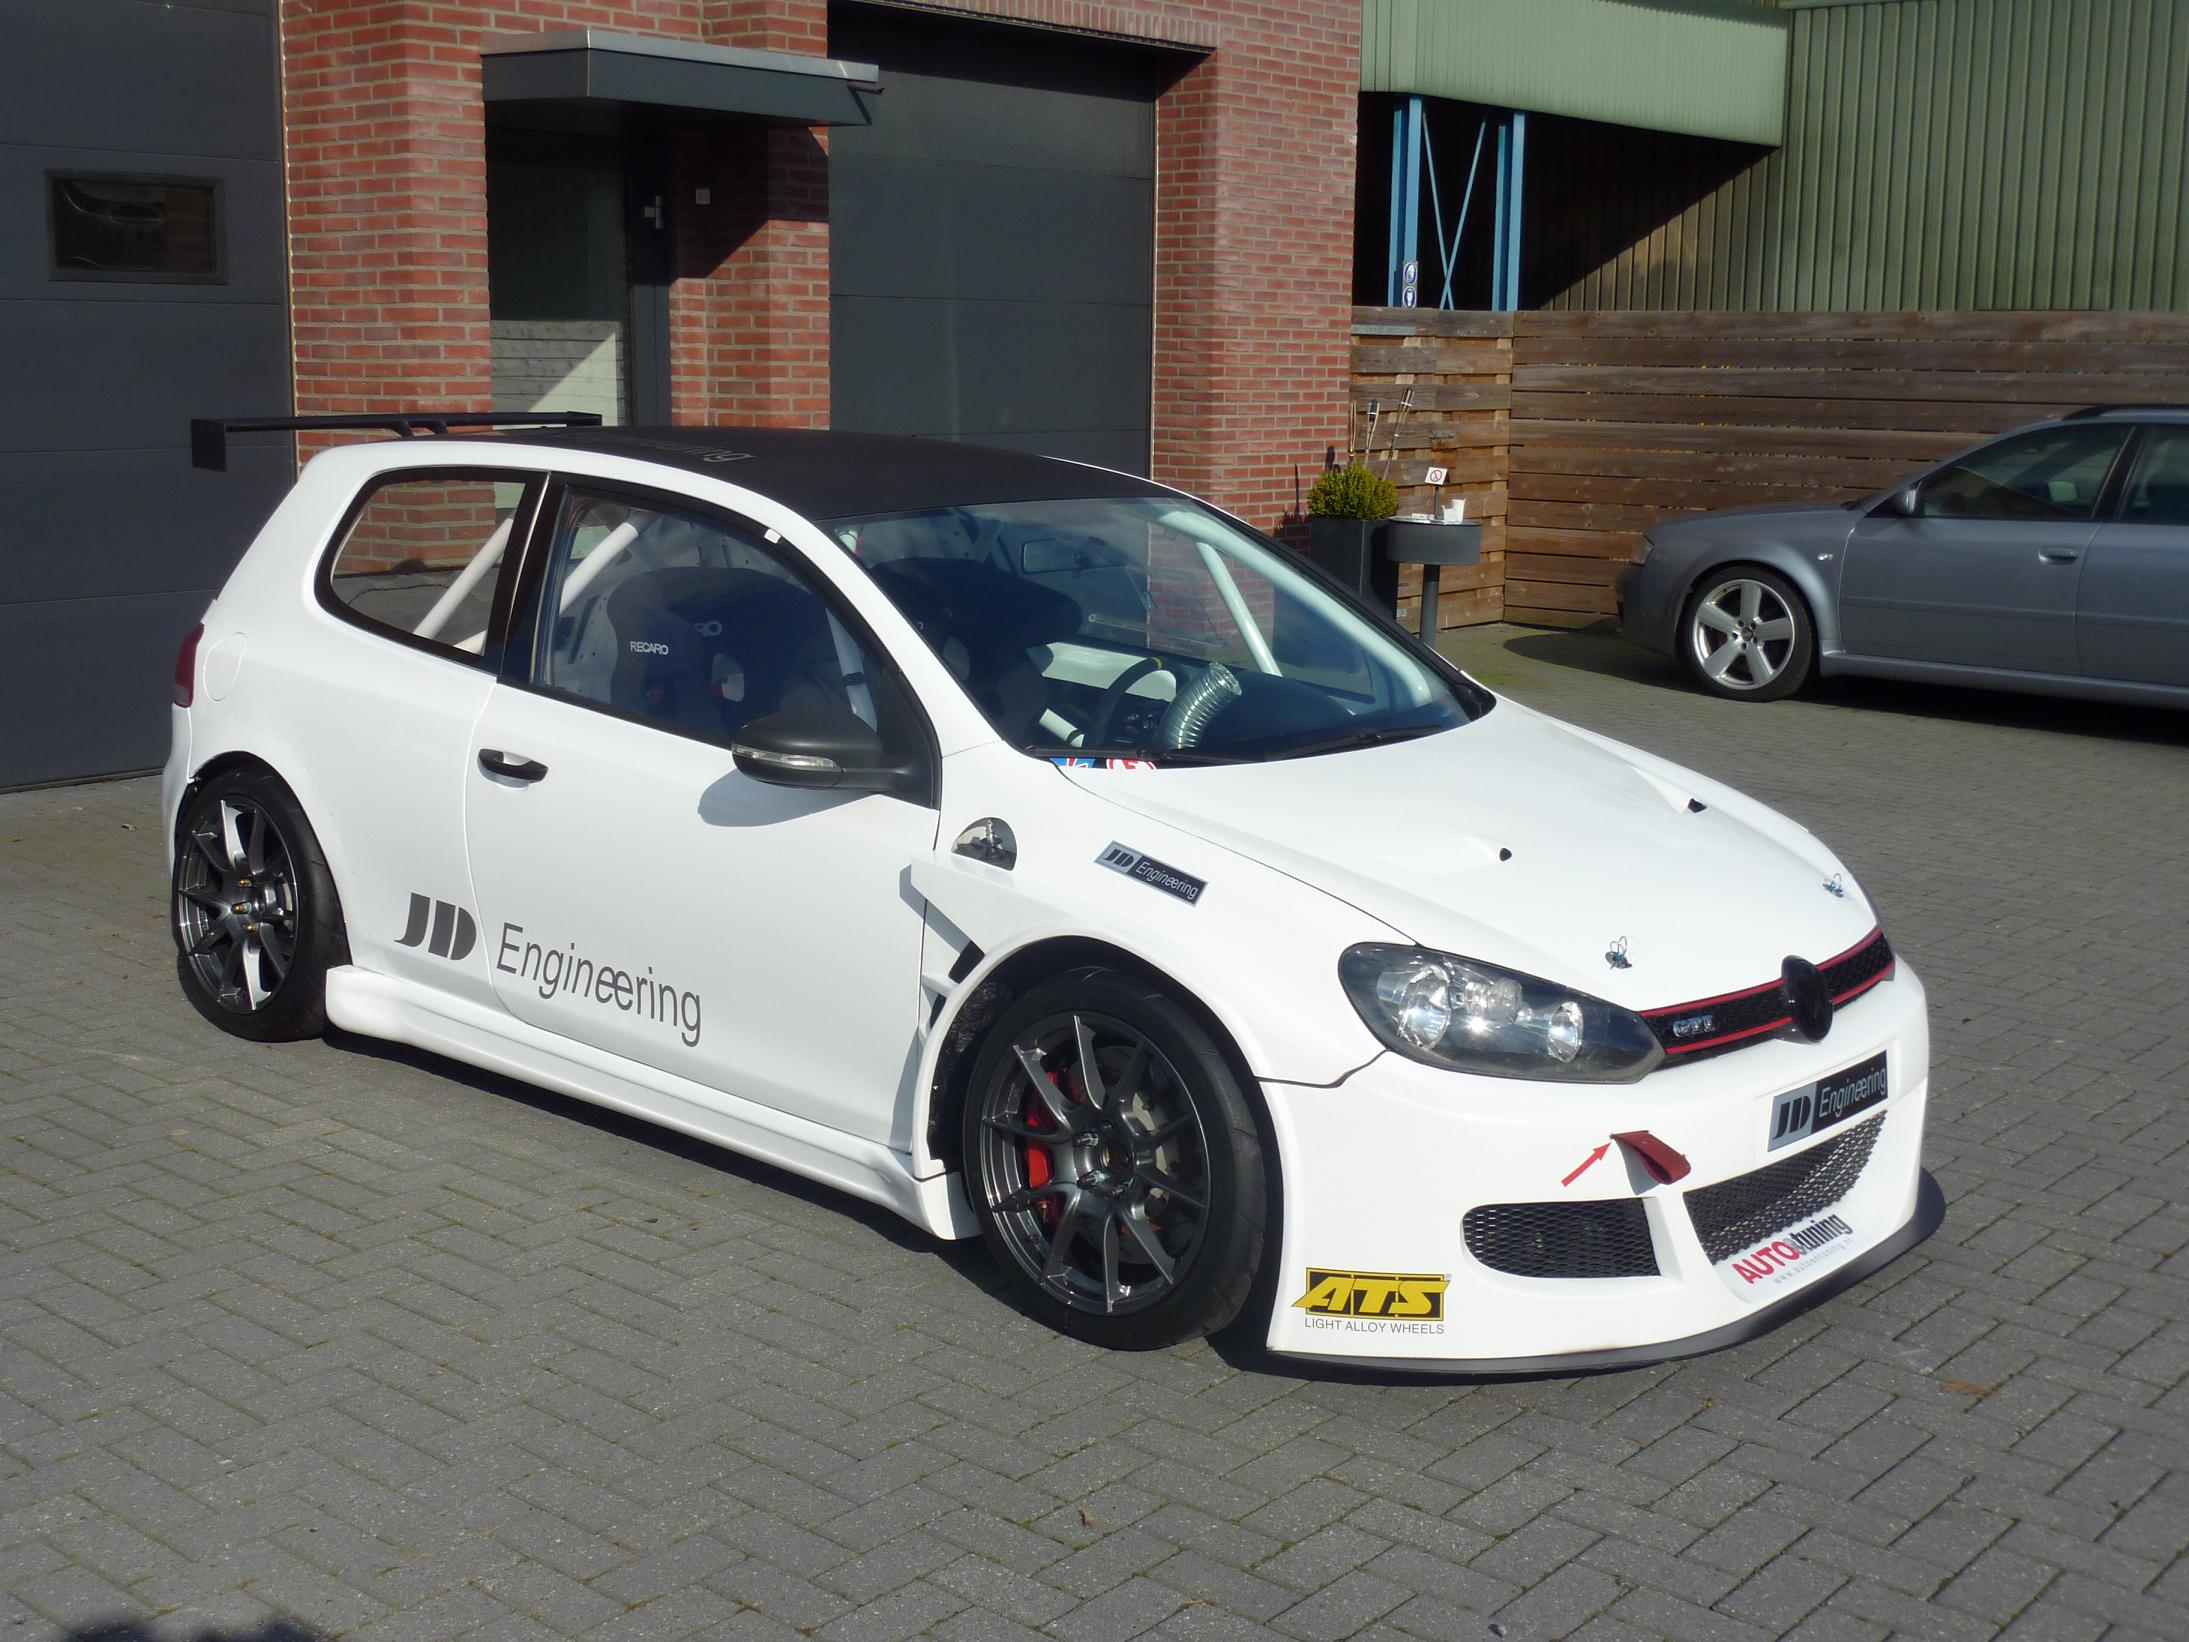 JDEngineering – Race Golf 6 2 0 TDI CR 140pk DSG